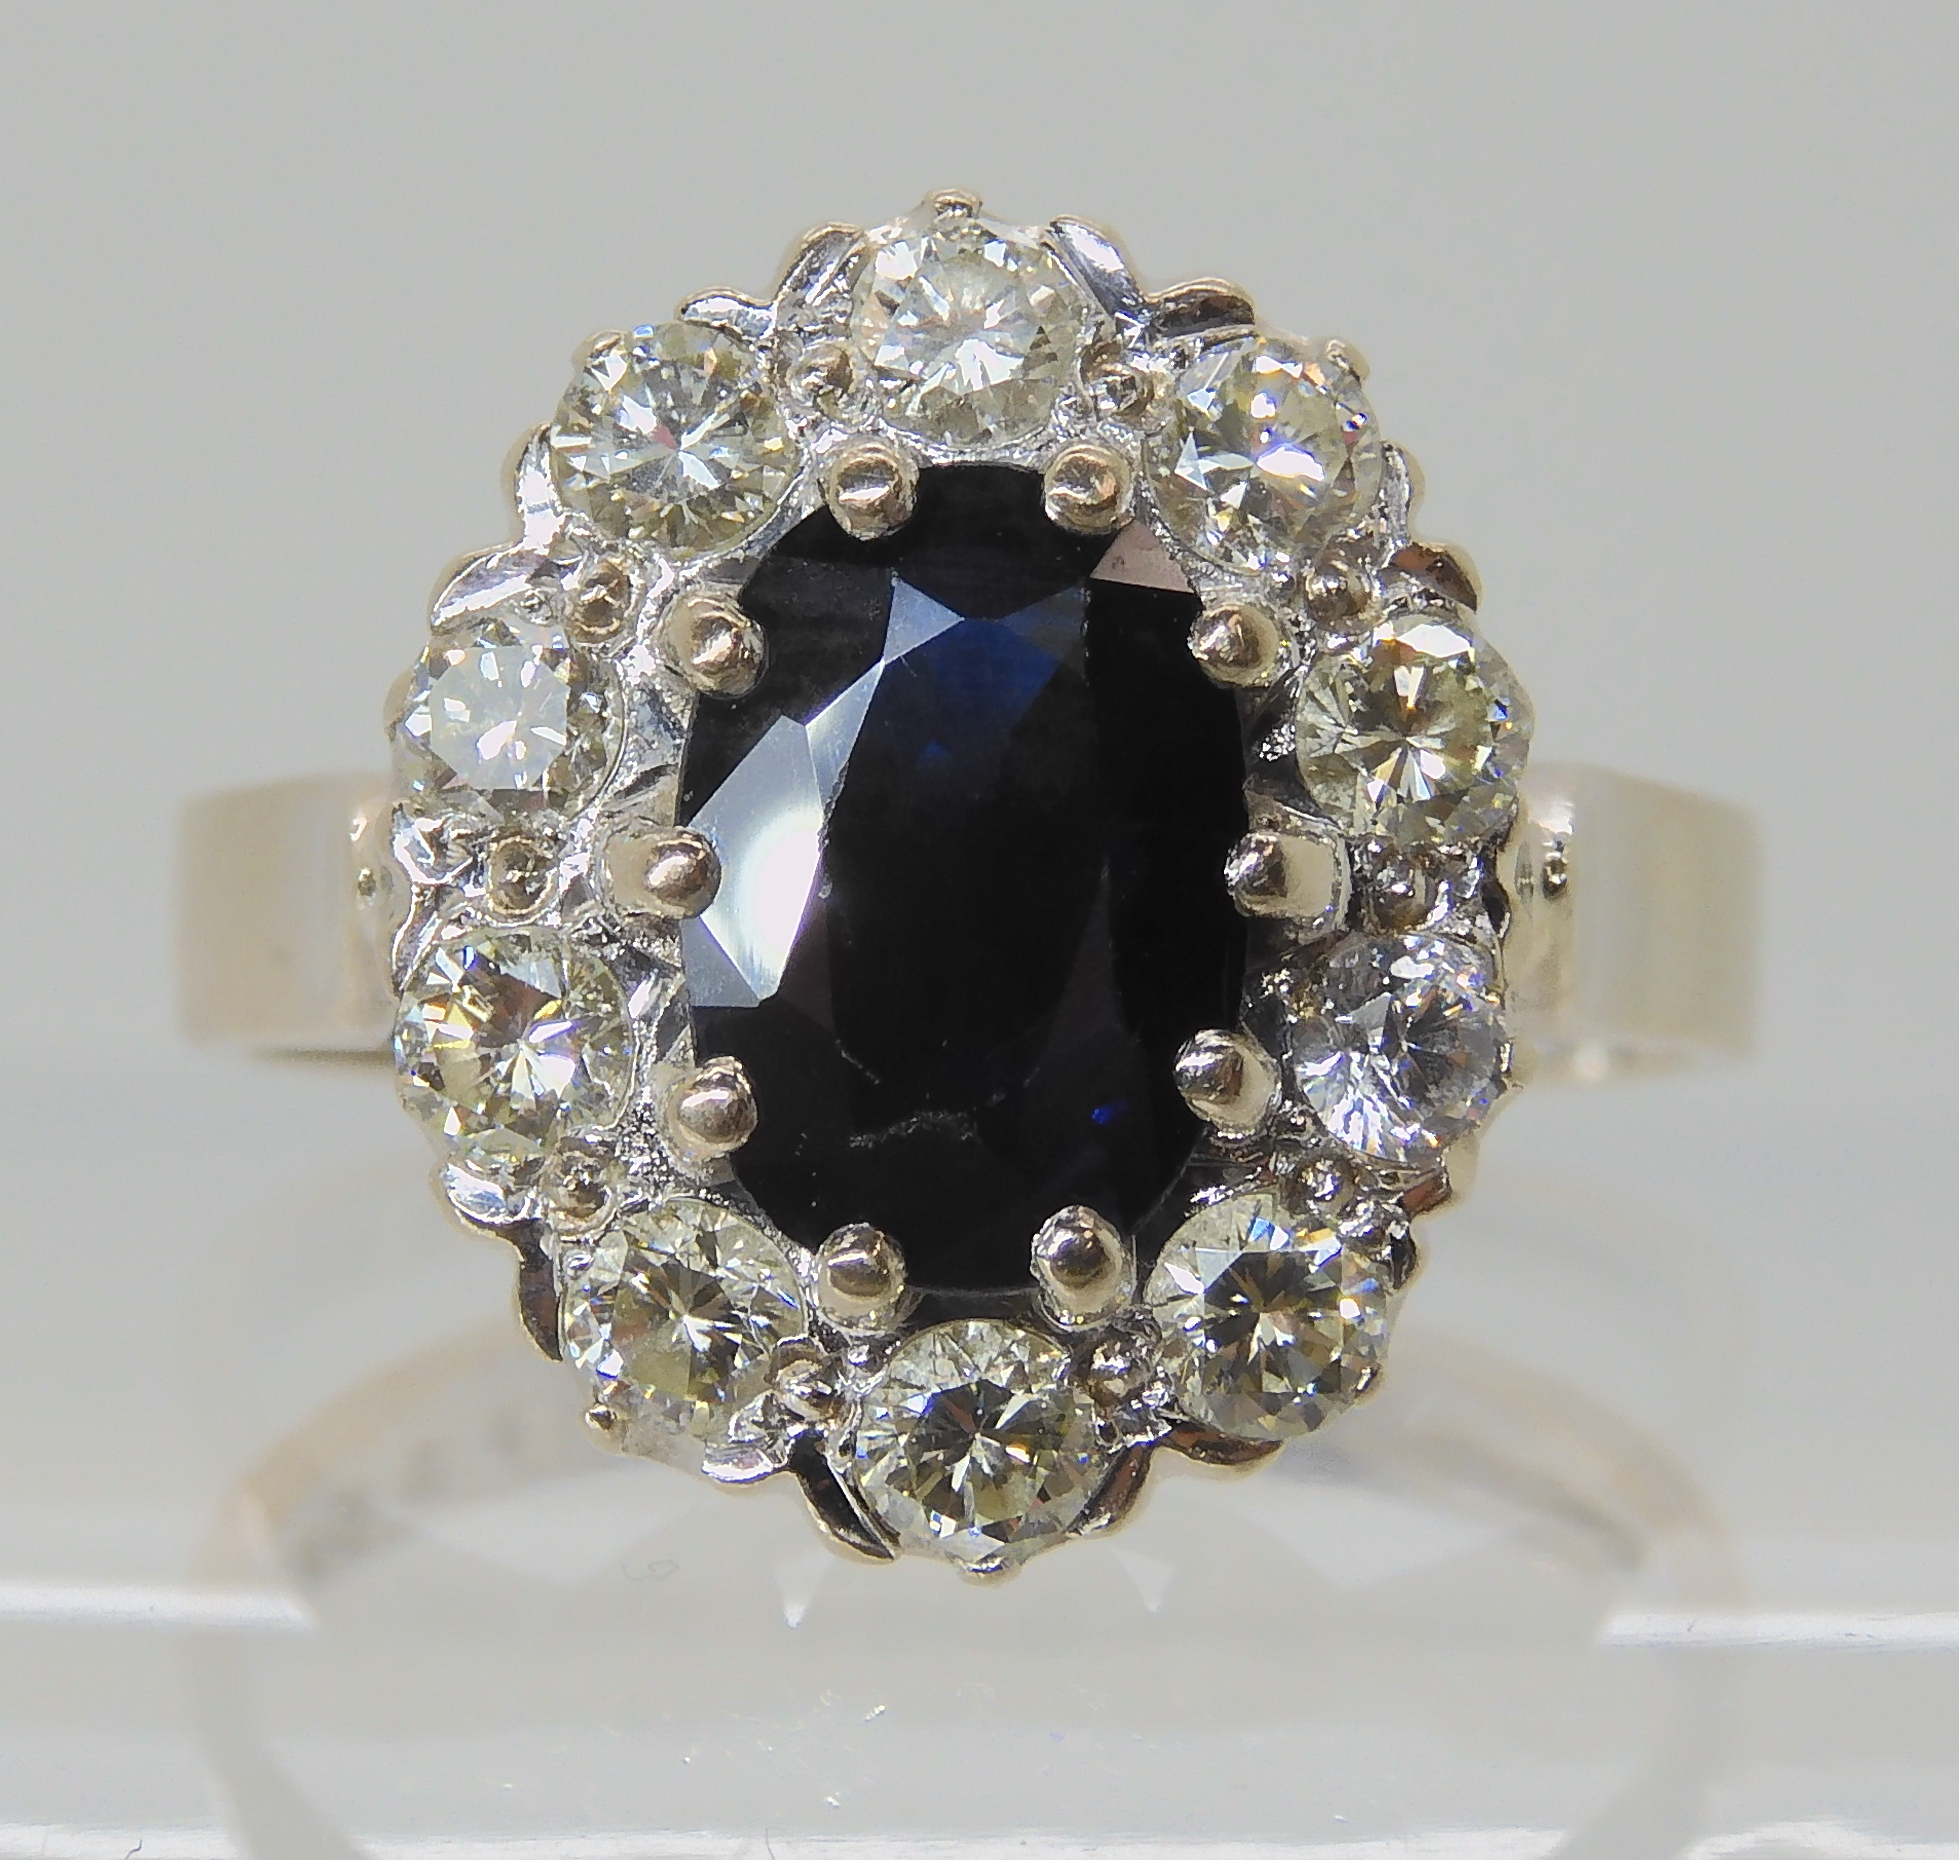 AN 18CT WHITE GOLD SAPPHIRE AND DIAMOND CLUSTER RING set with estimated approx 0.50cts of